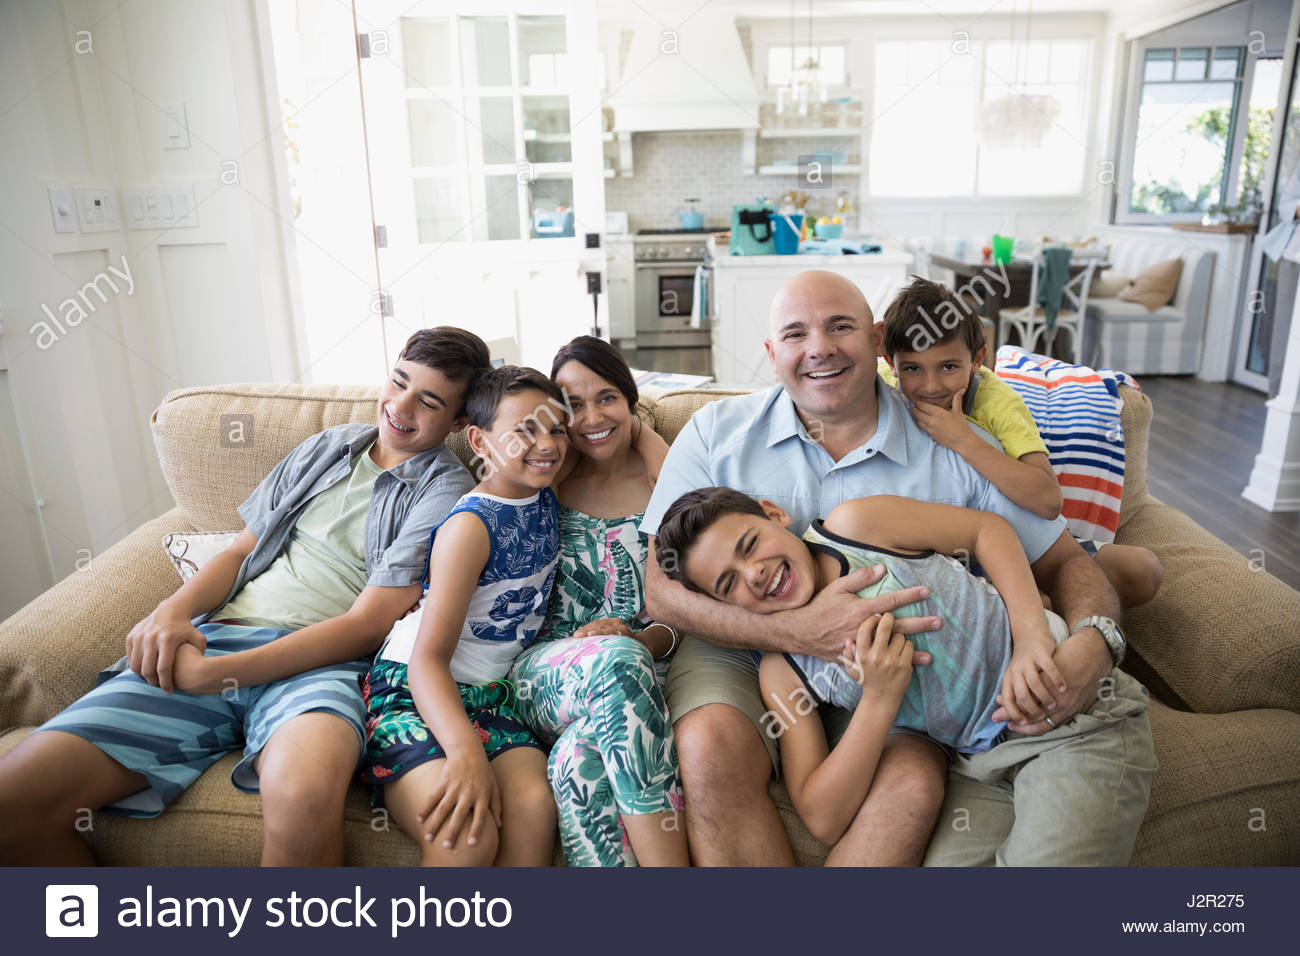 Portrait smiling family in beach house living room - Stock Image